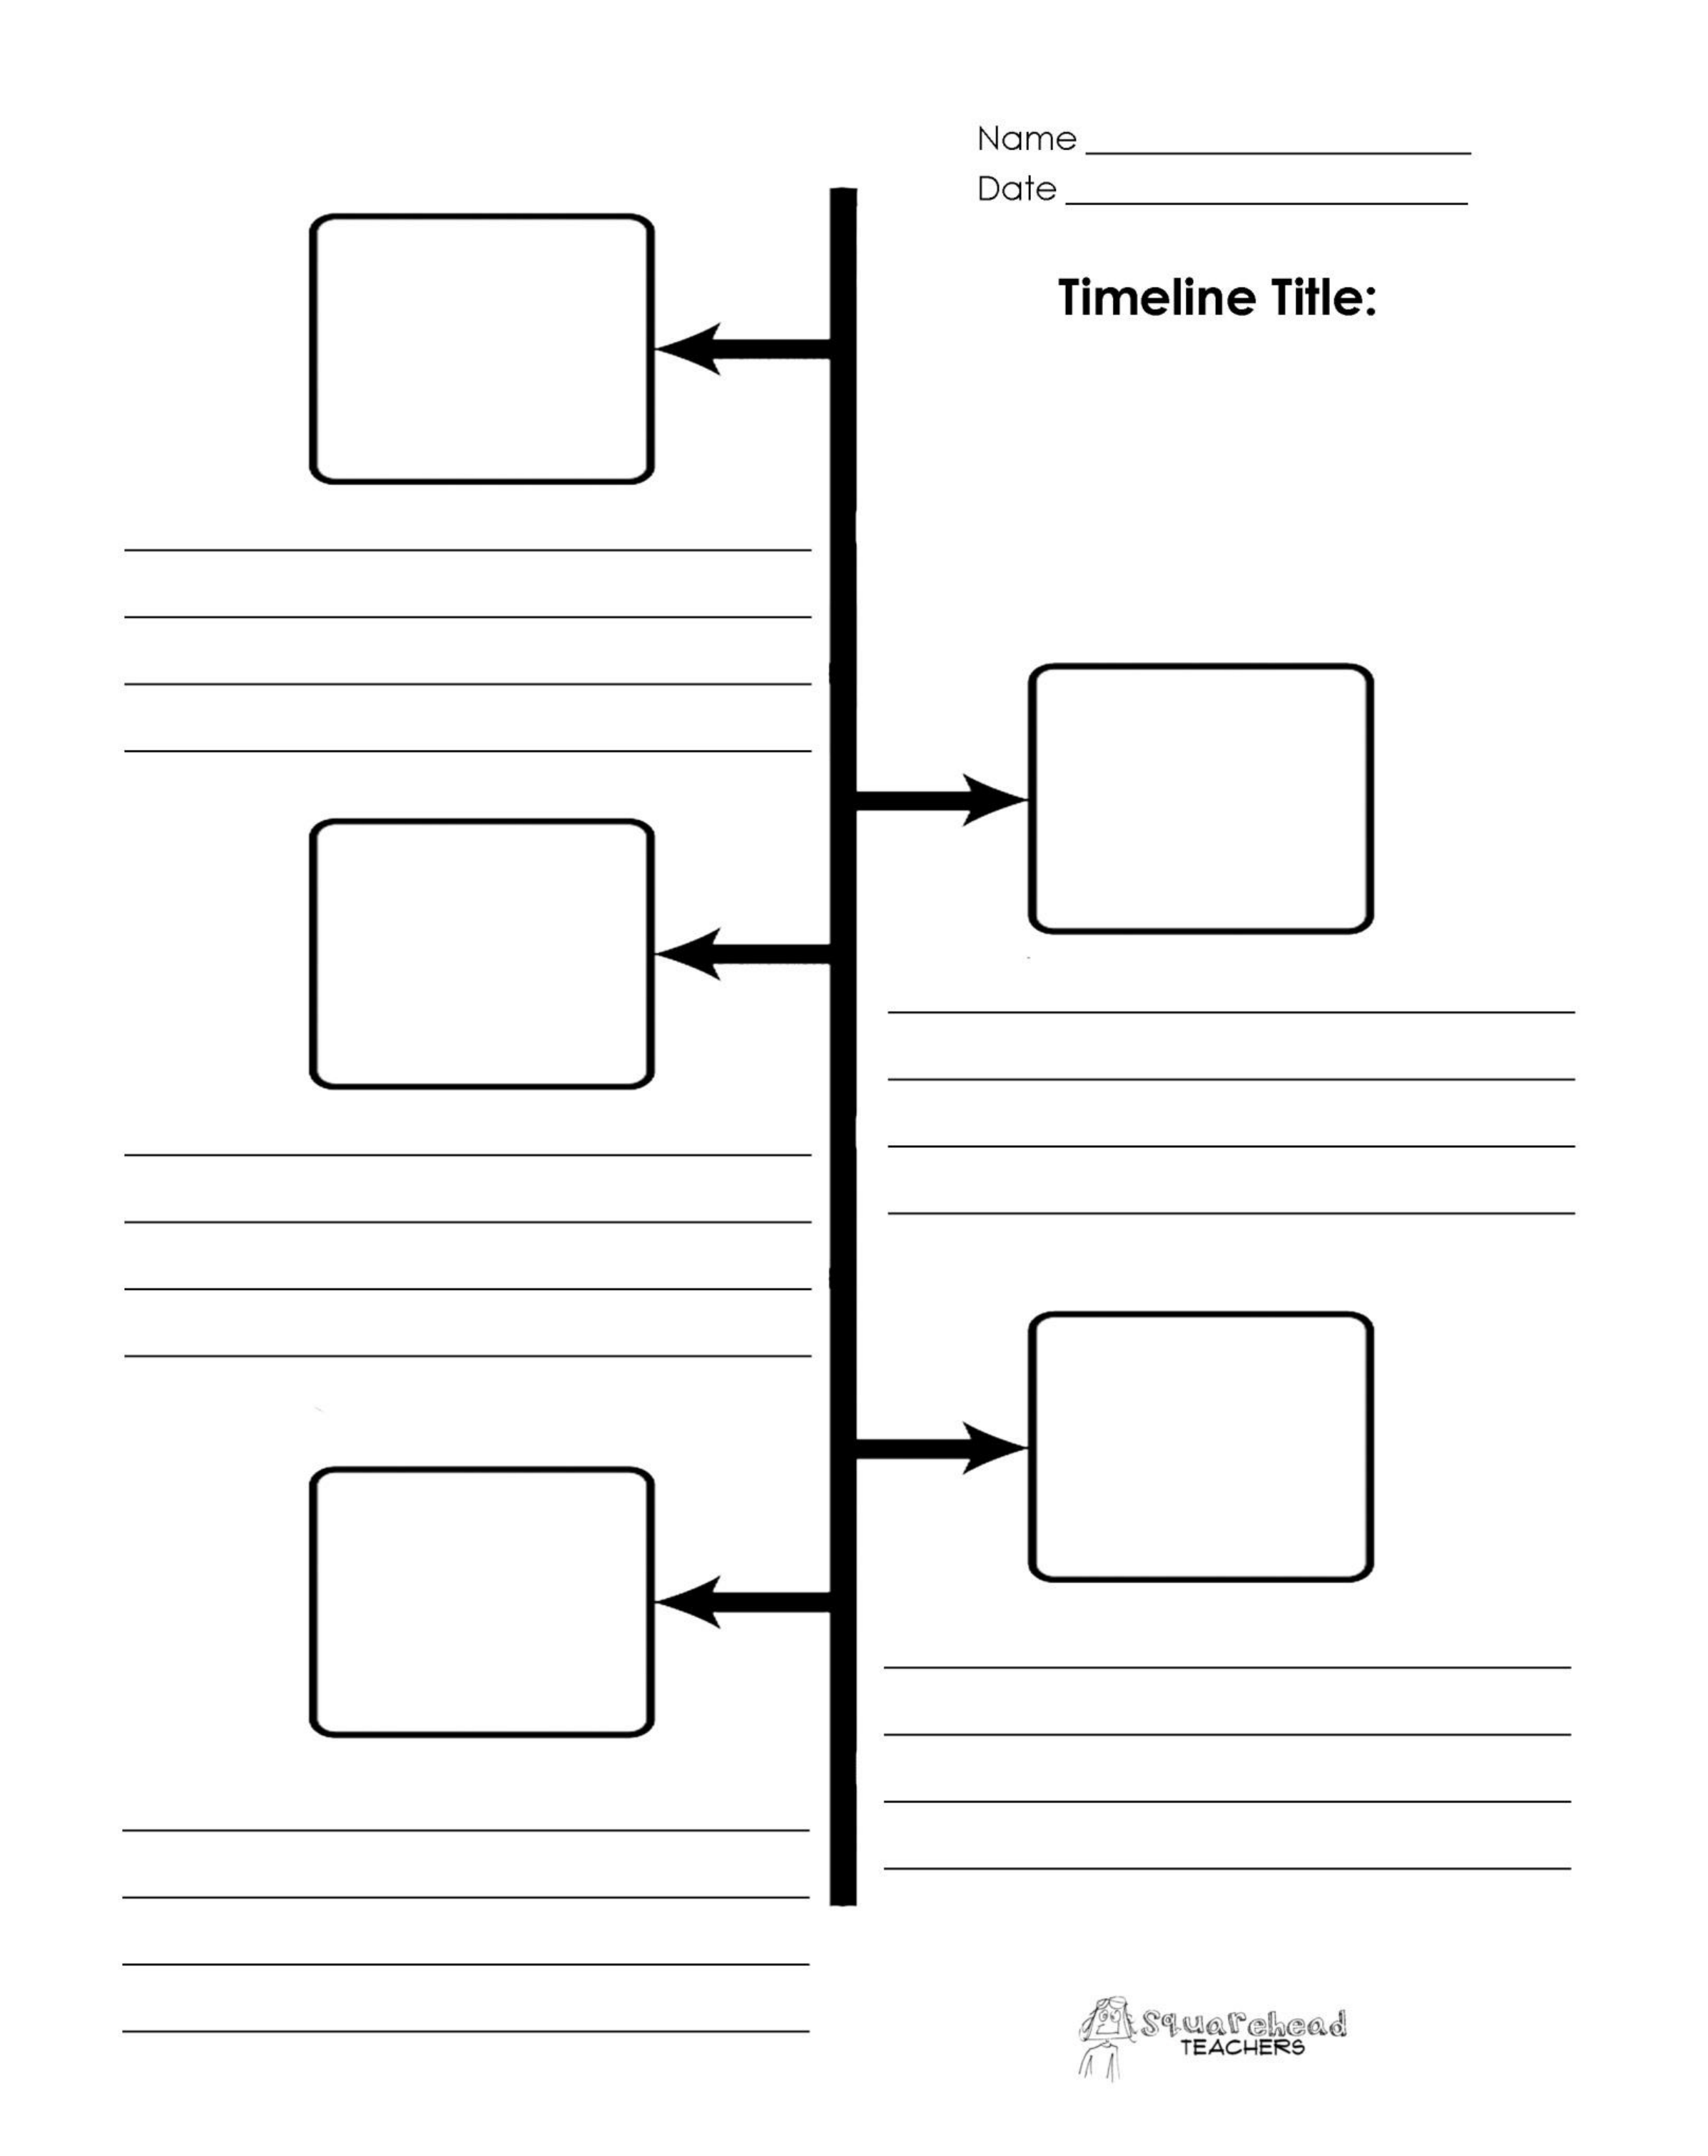 Free Resume Program. Blank Project Timeline Template Free Download .  Free Resume Program